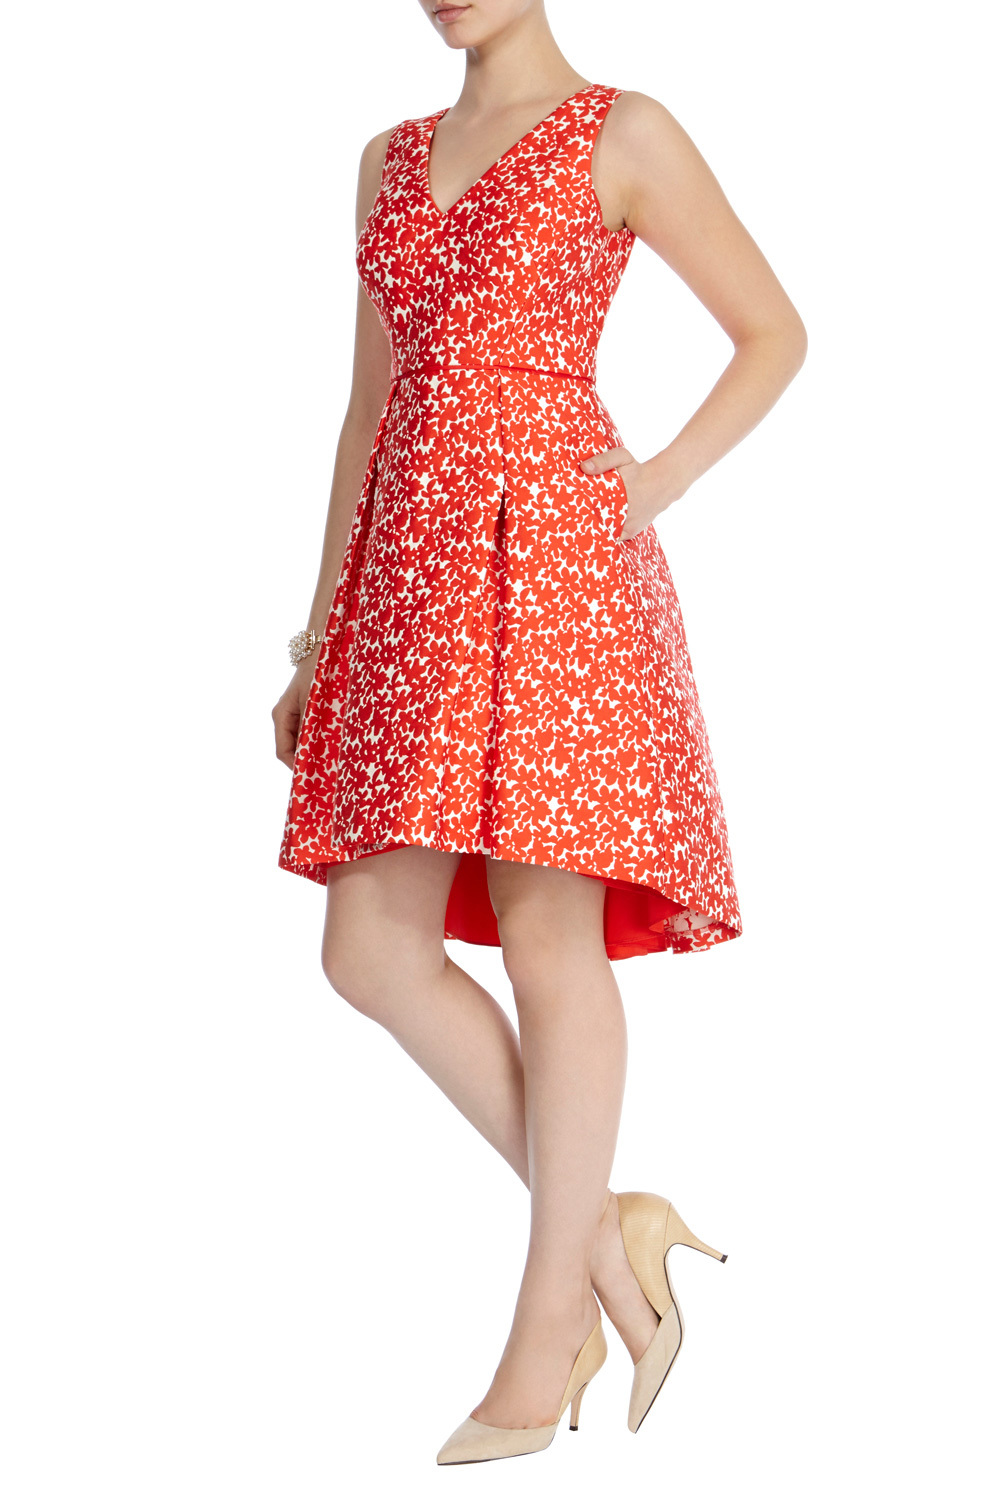 Jariney Jacquard Dress - neckline: v-neck; sleeve style: sleeveless; predominant colour: bright orange; occasions: evening, occasion; length: on the knee; fit: fitted at waist & bust; style: fit & flare; fibres: cotton - mix; sleeve length: sleeveless; pattern type: fabric; pattern size: standard; pattern: florals; texture group: brocade/jacquard; season: s/s 2016; wardrobe: event